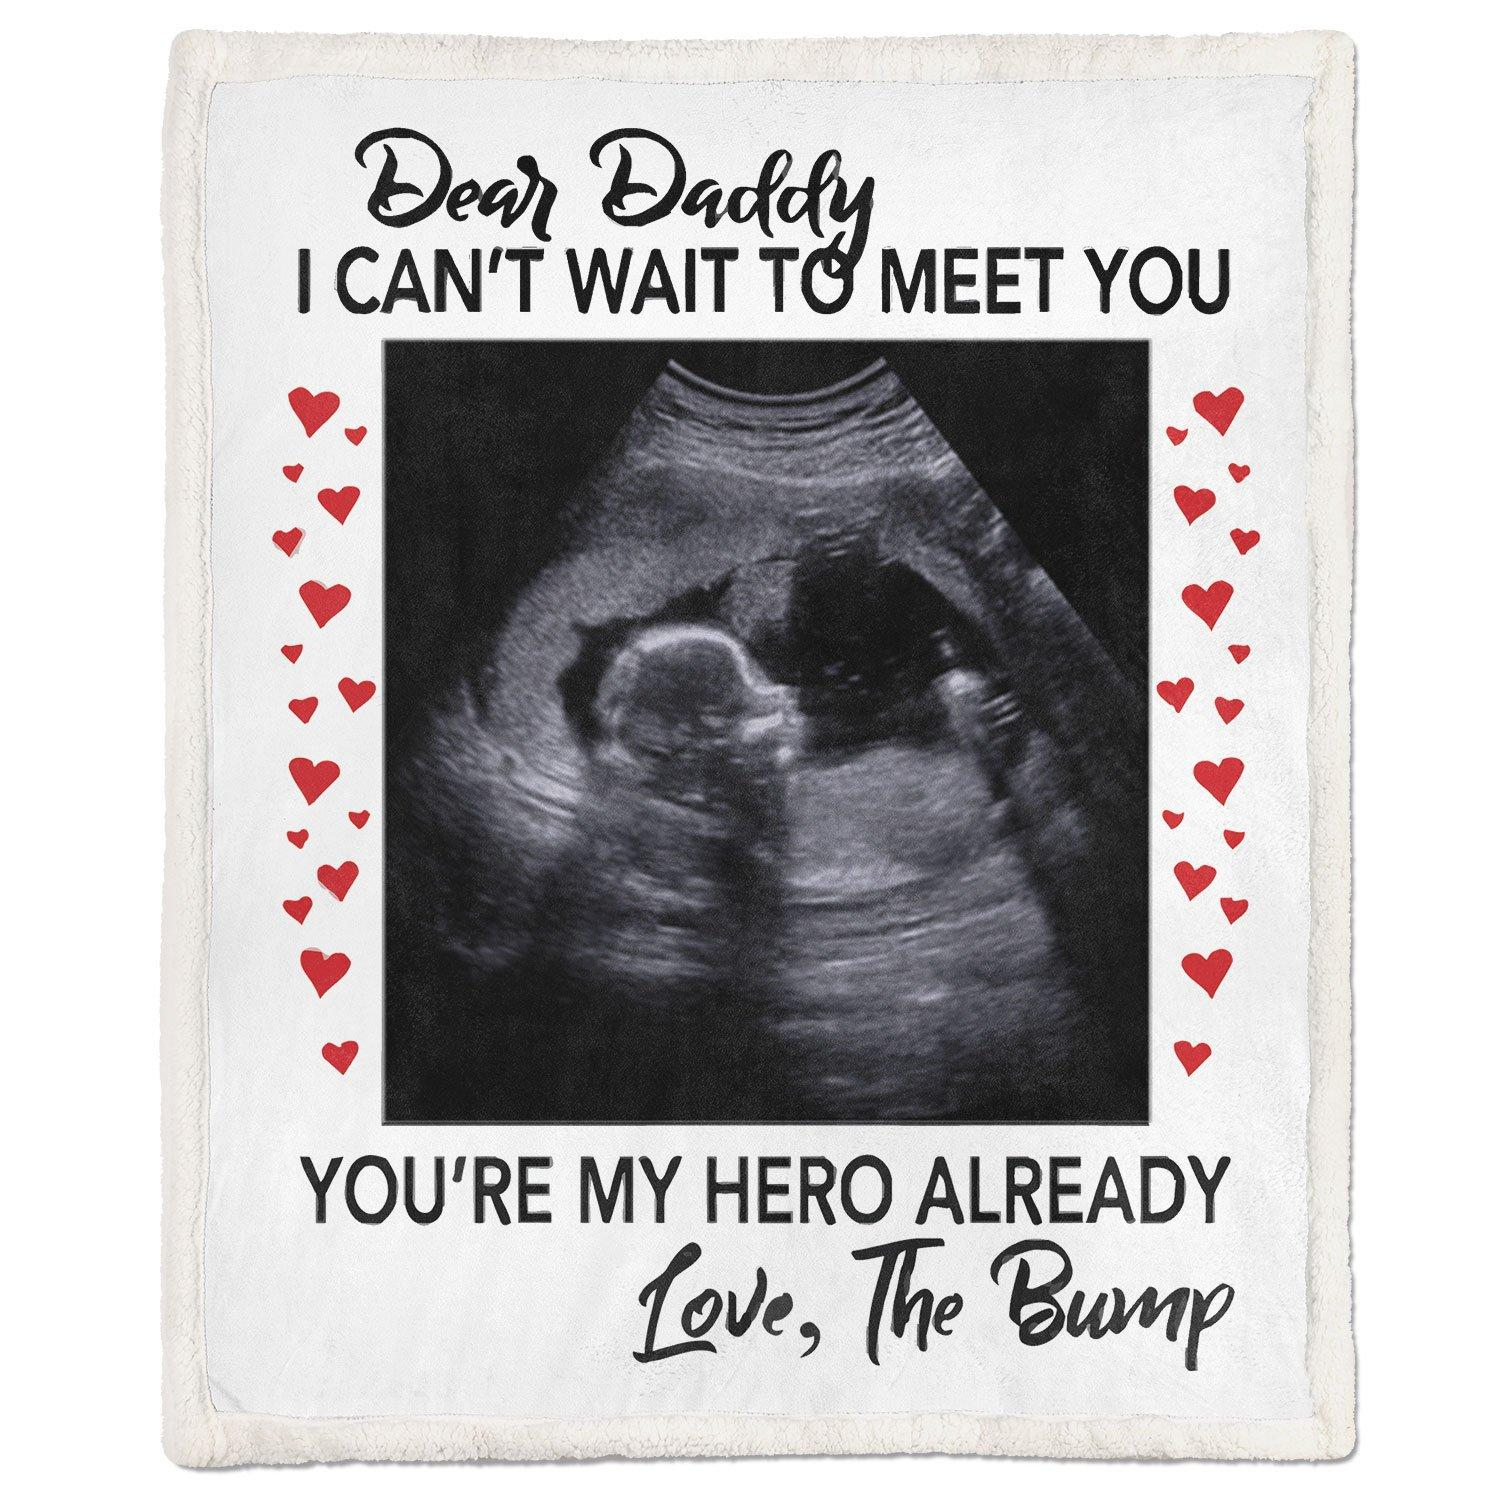 Dear daddy I can't wait to meet you pregnant fleece blanket - large